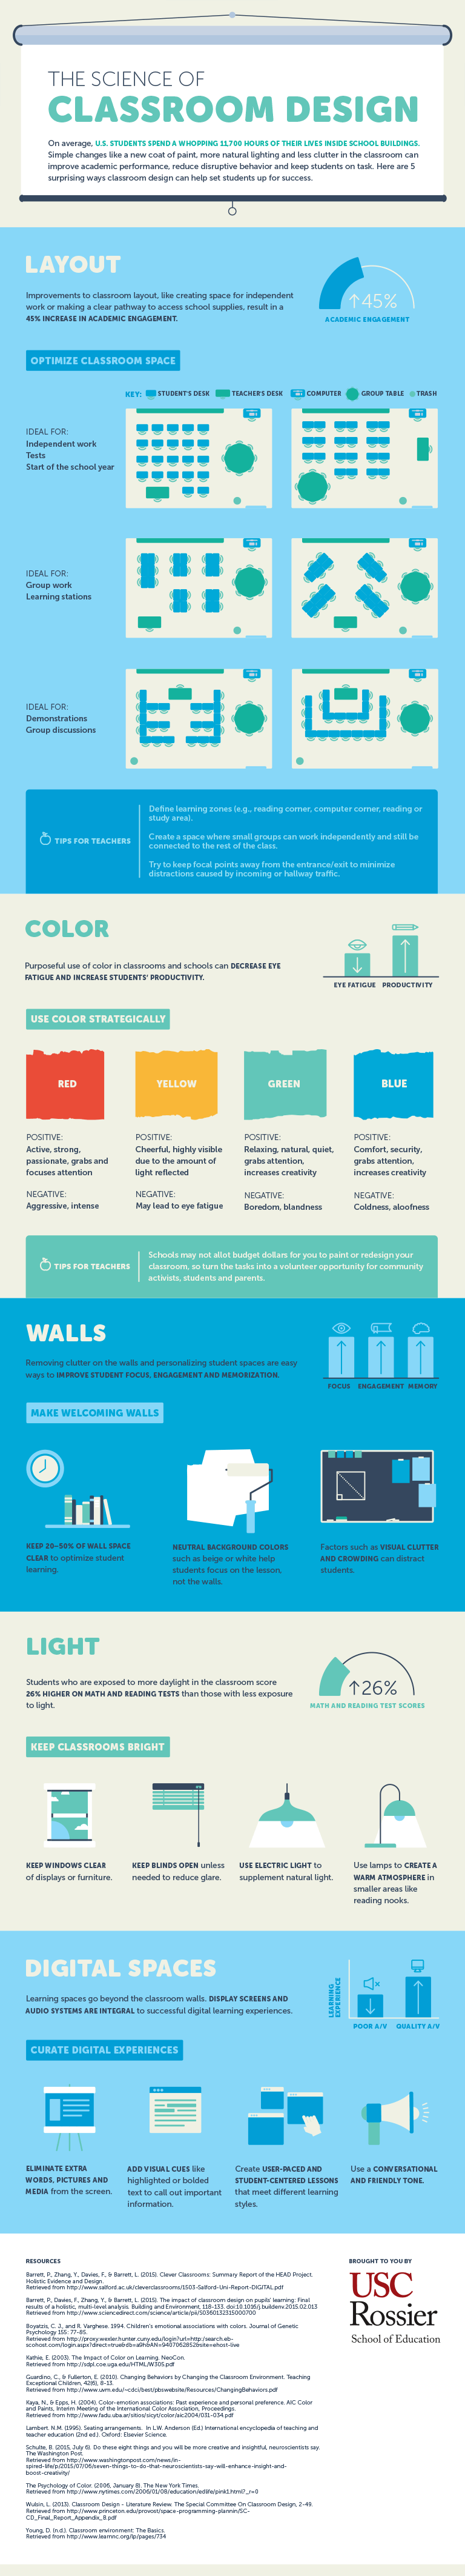 Classroom Design To Promote Learning ~ The science of classroom design infographic e learning